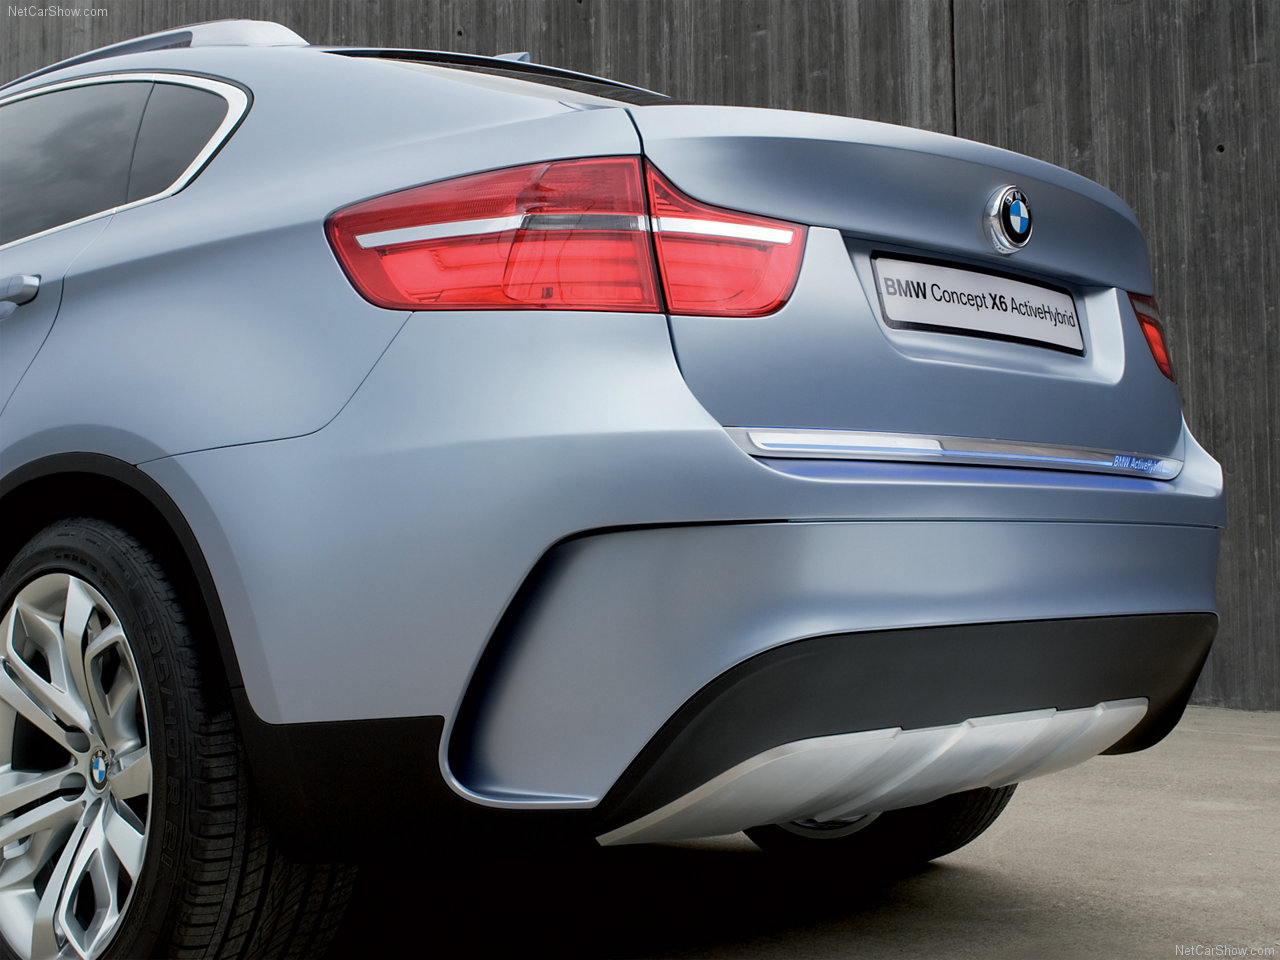 Index of /cars/makes/b/bmw/x6